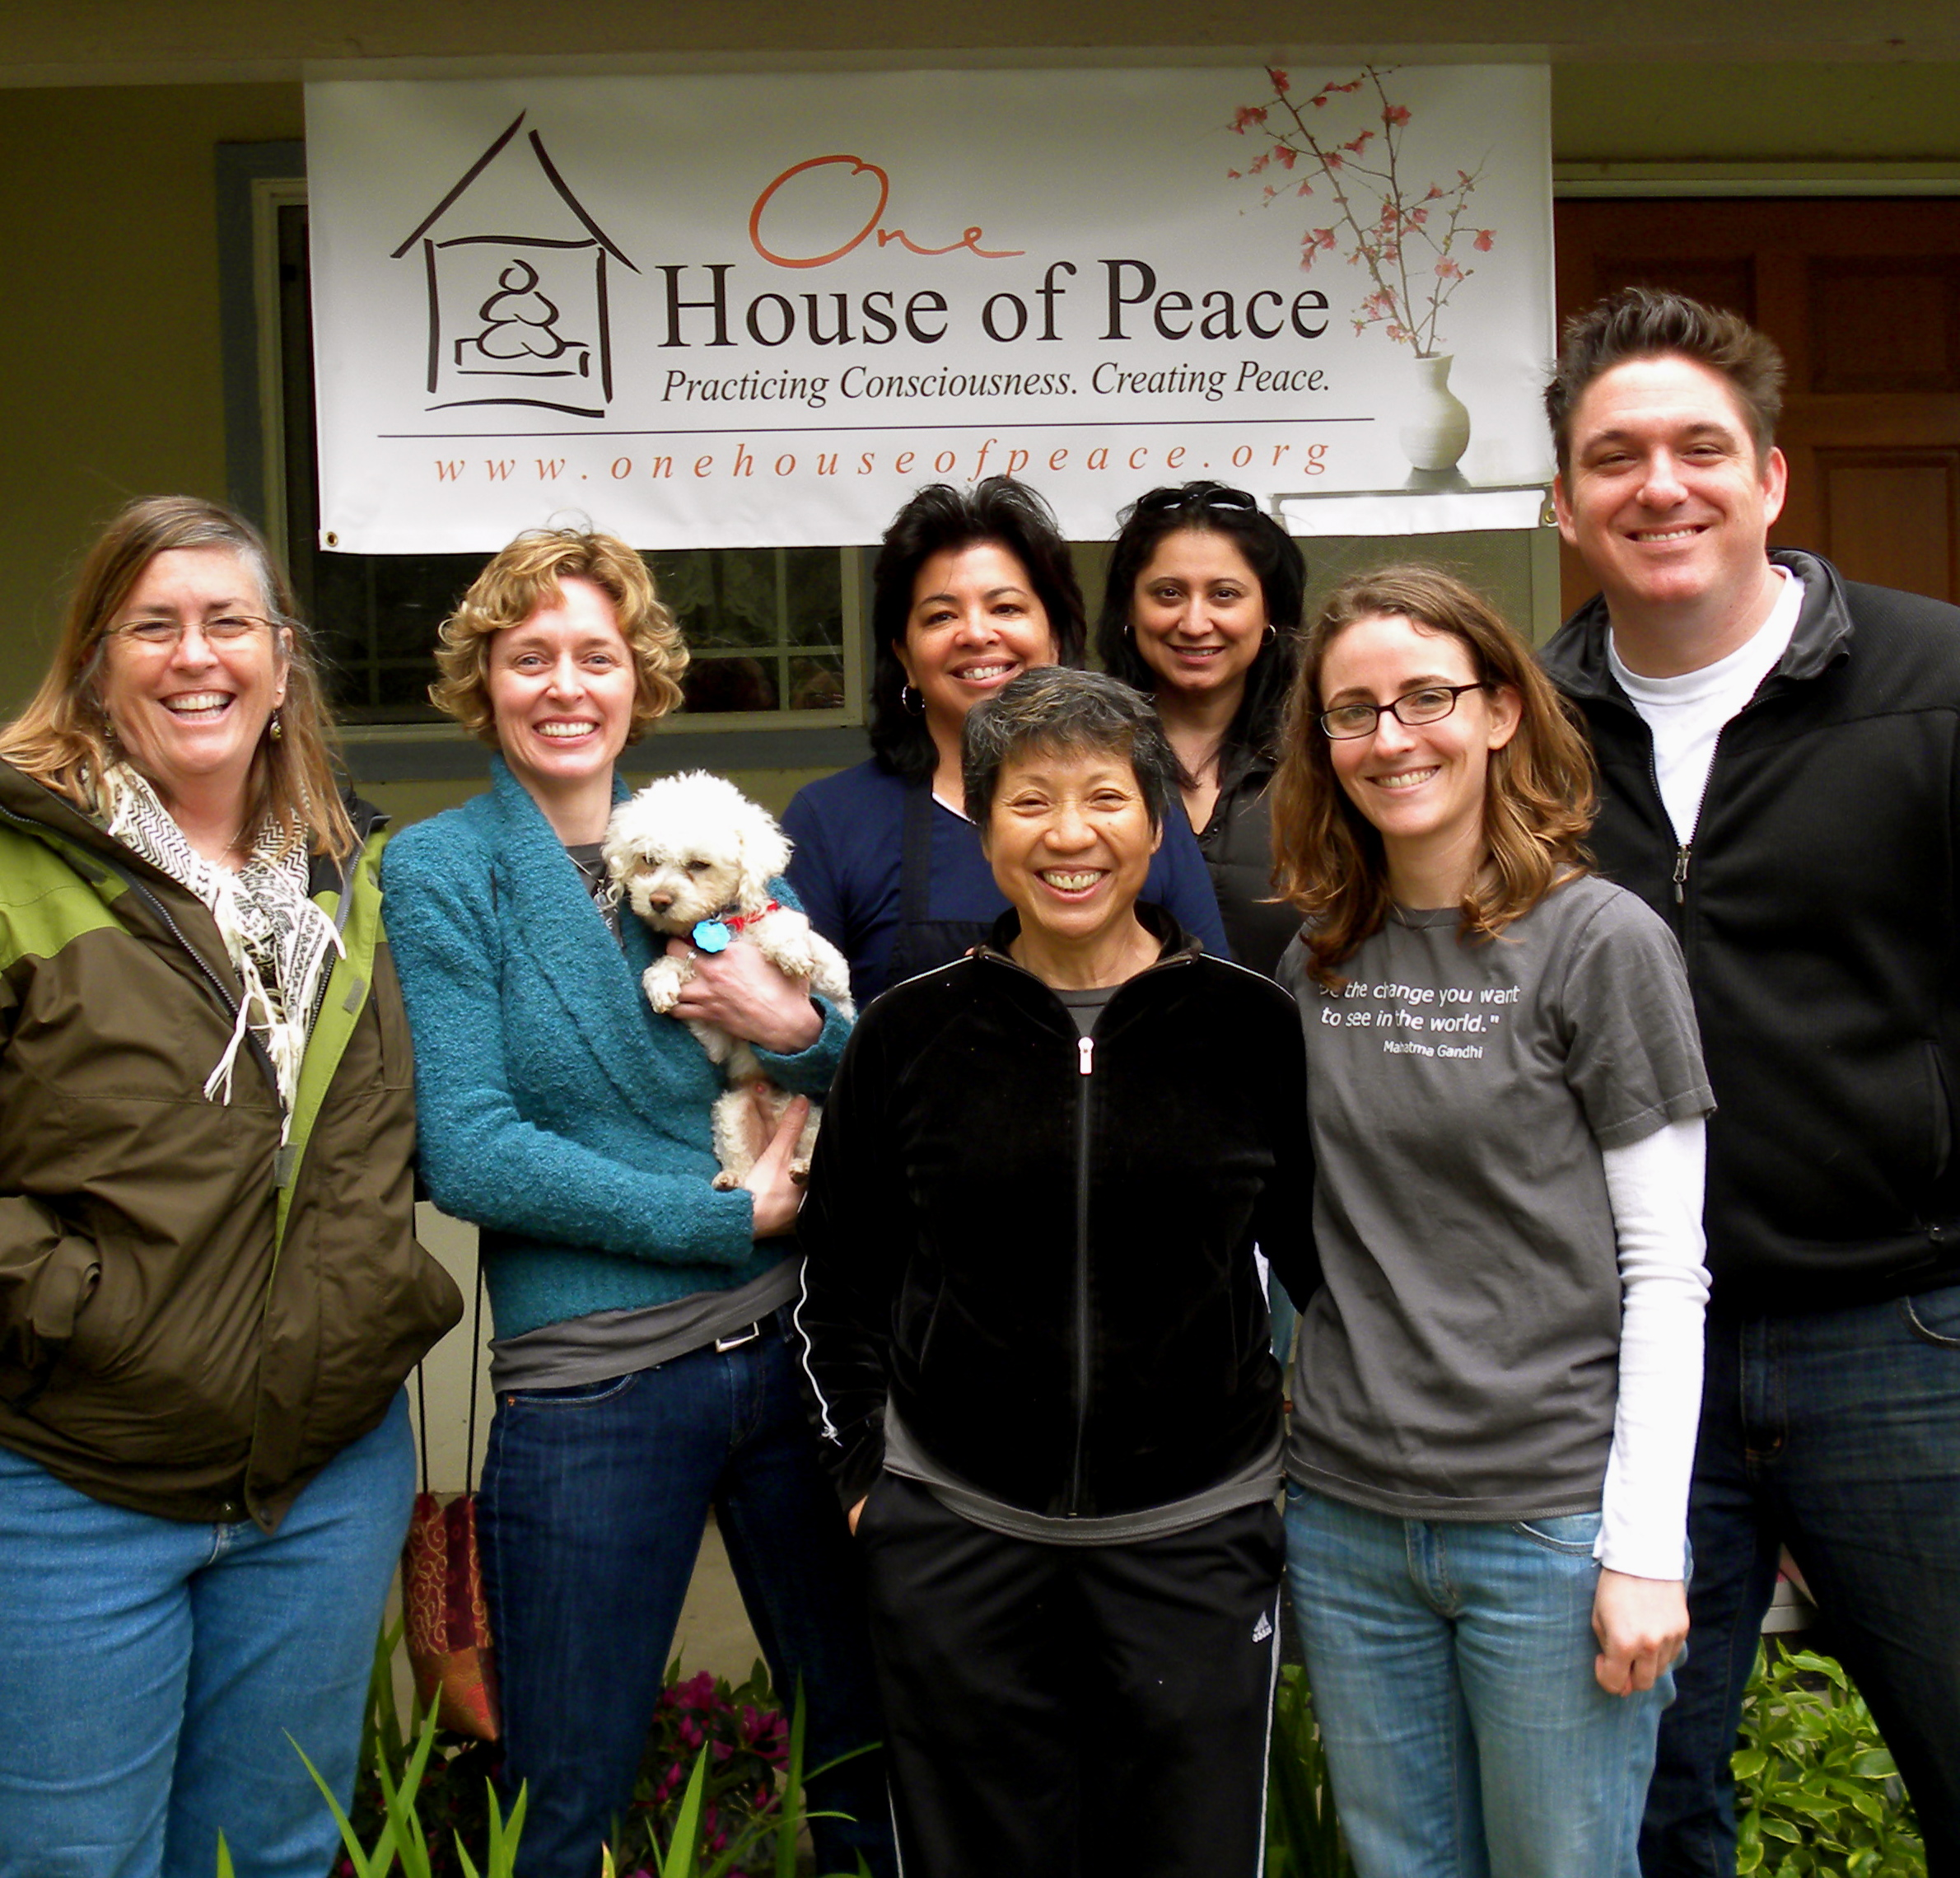 Folks from the One House of Peace community in 2010 in Sacramento, CA.